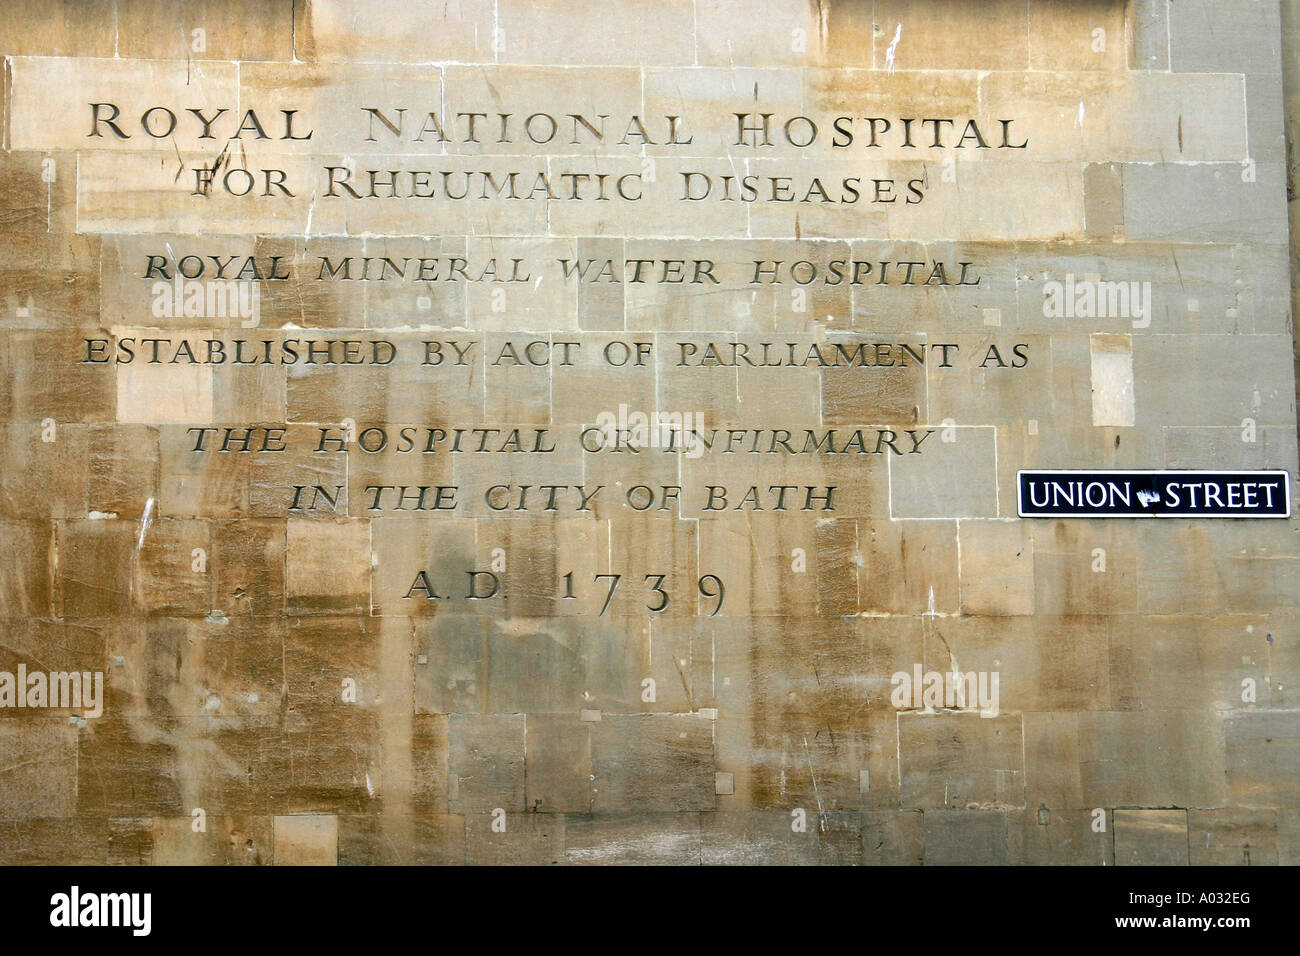 Proclamation on the side of the Royal National Hospital for Rheumatic Diseases in Bath UK - Stock Image